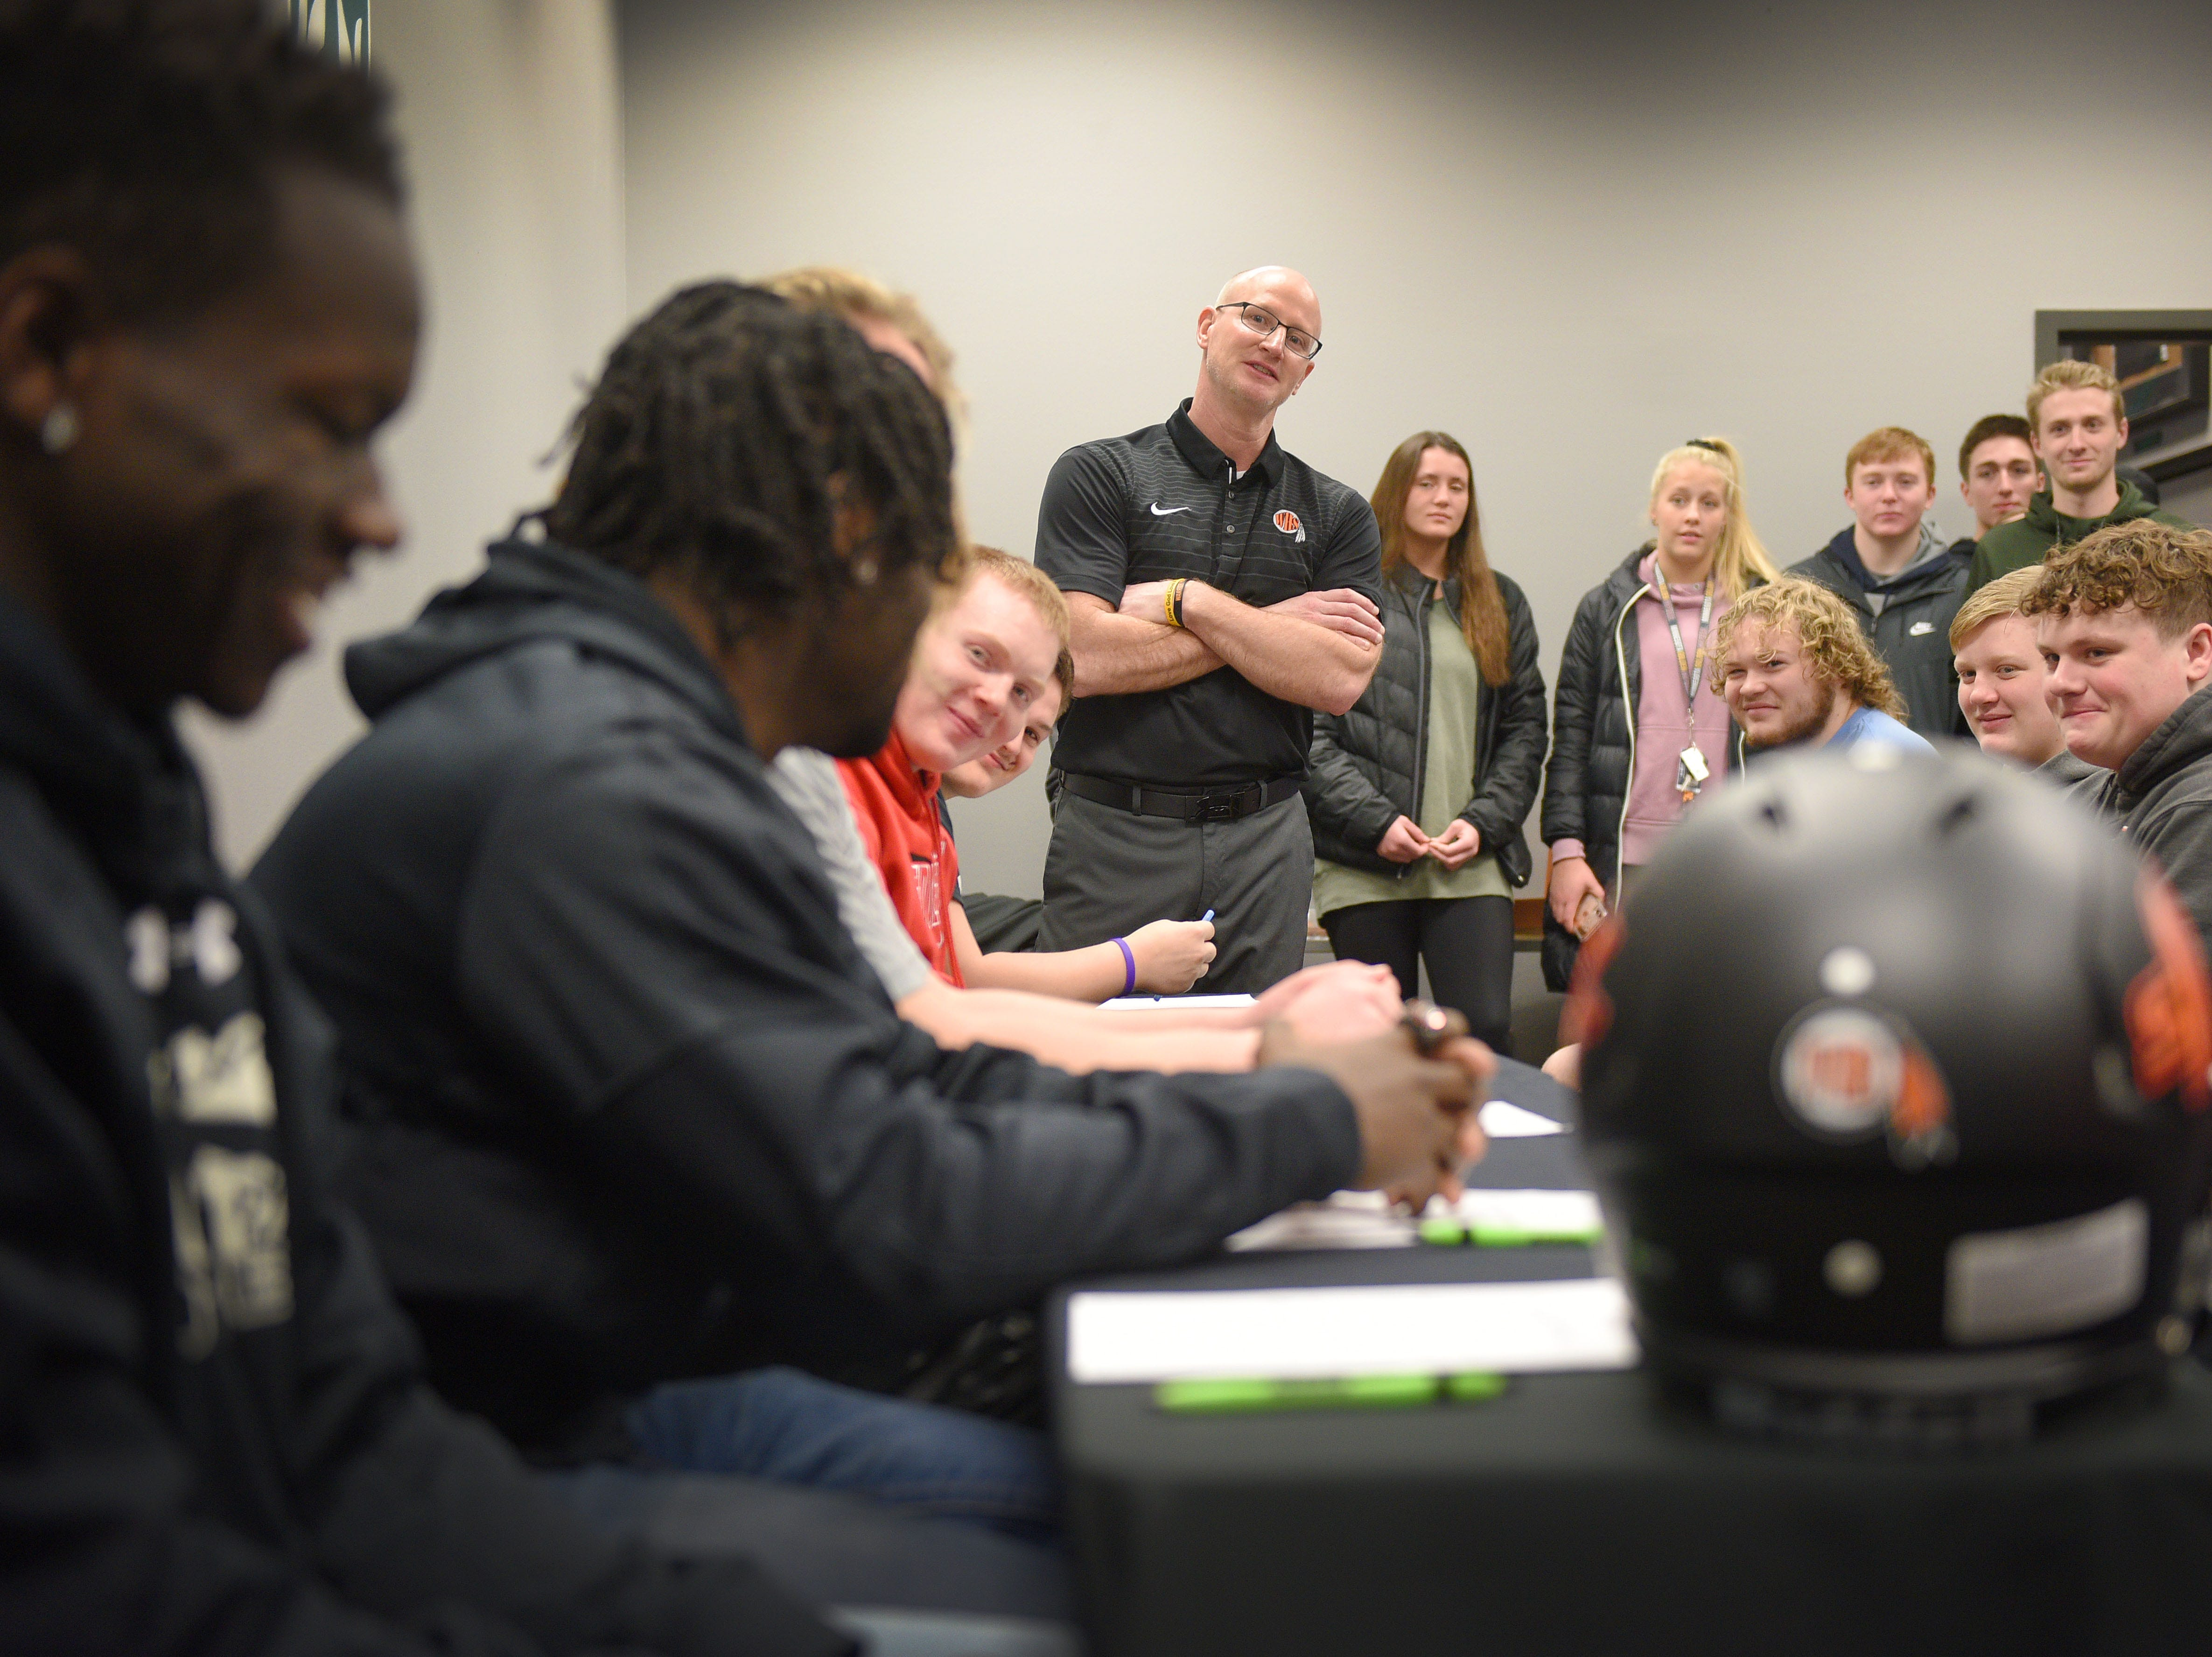 Washington head coach Chad Stadem crakes a joke to Tupak Kpeayeh during Washington High School signing day Wednesday, Feb. 6, at Avera Sports Institute in Sioux Falls. Kpeayeh singed a National Letter of Intent to play football at Morningside College.